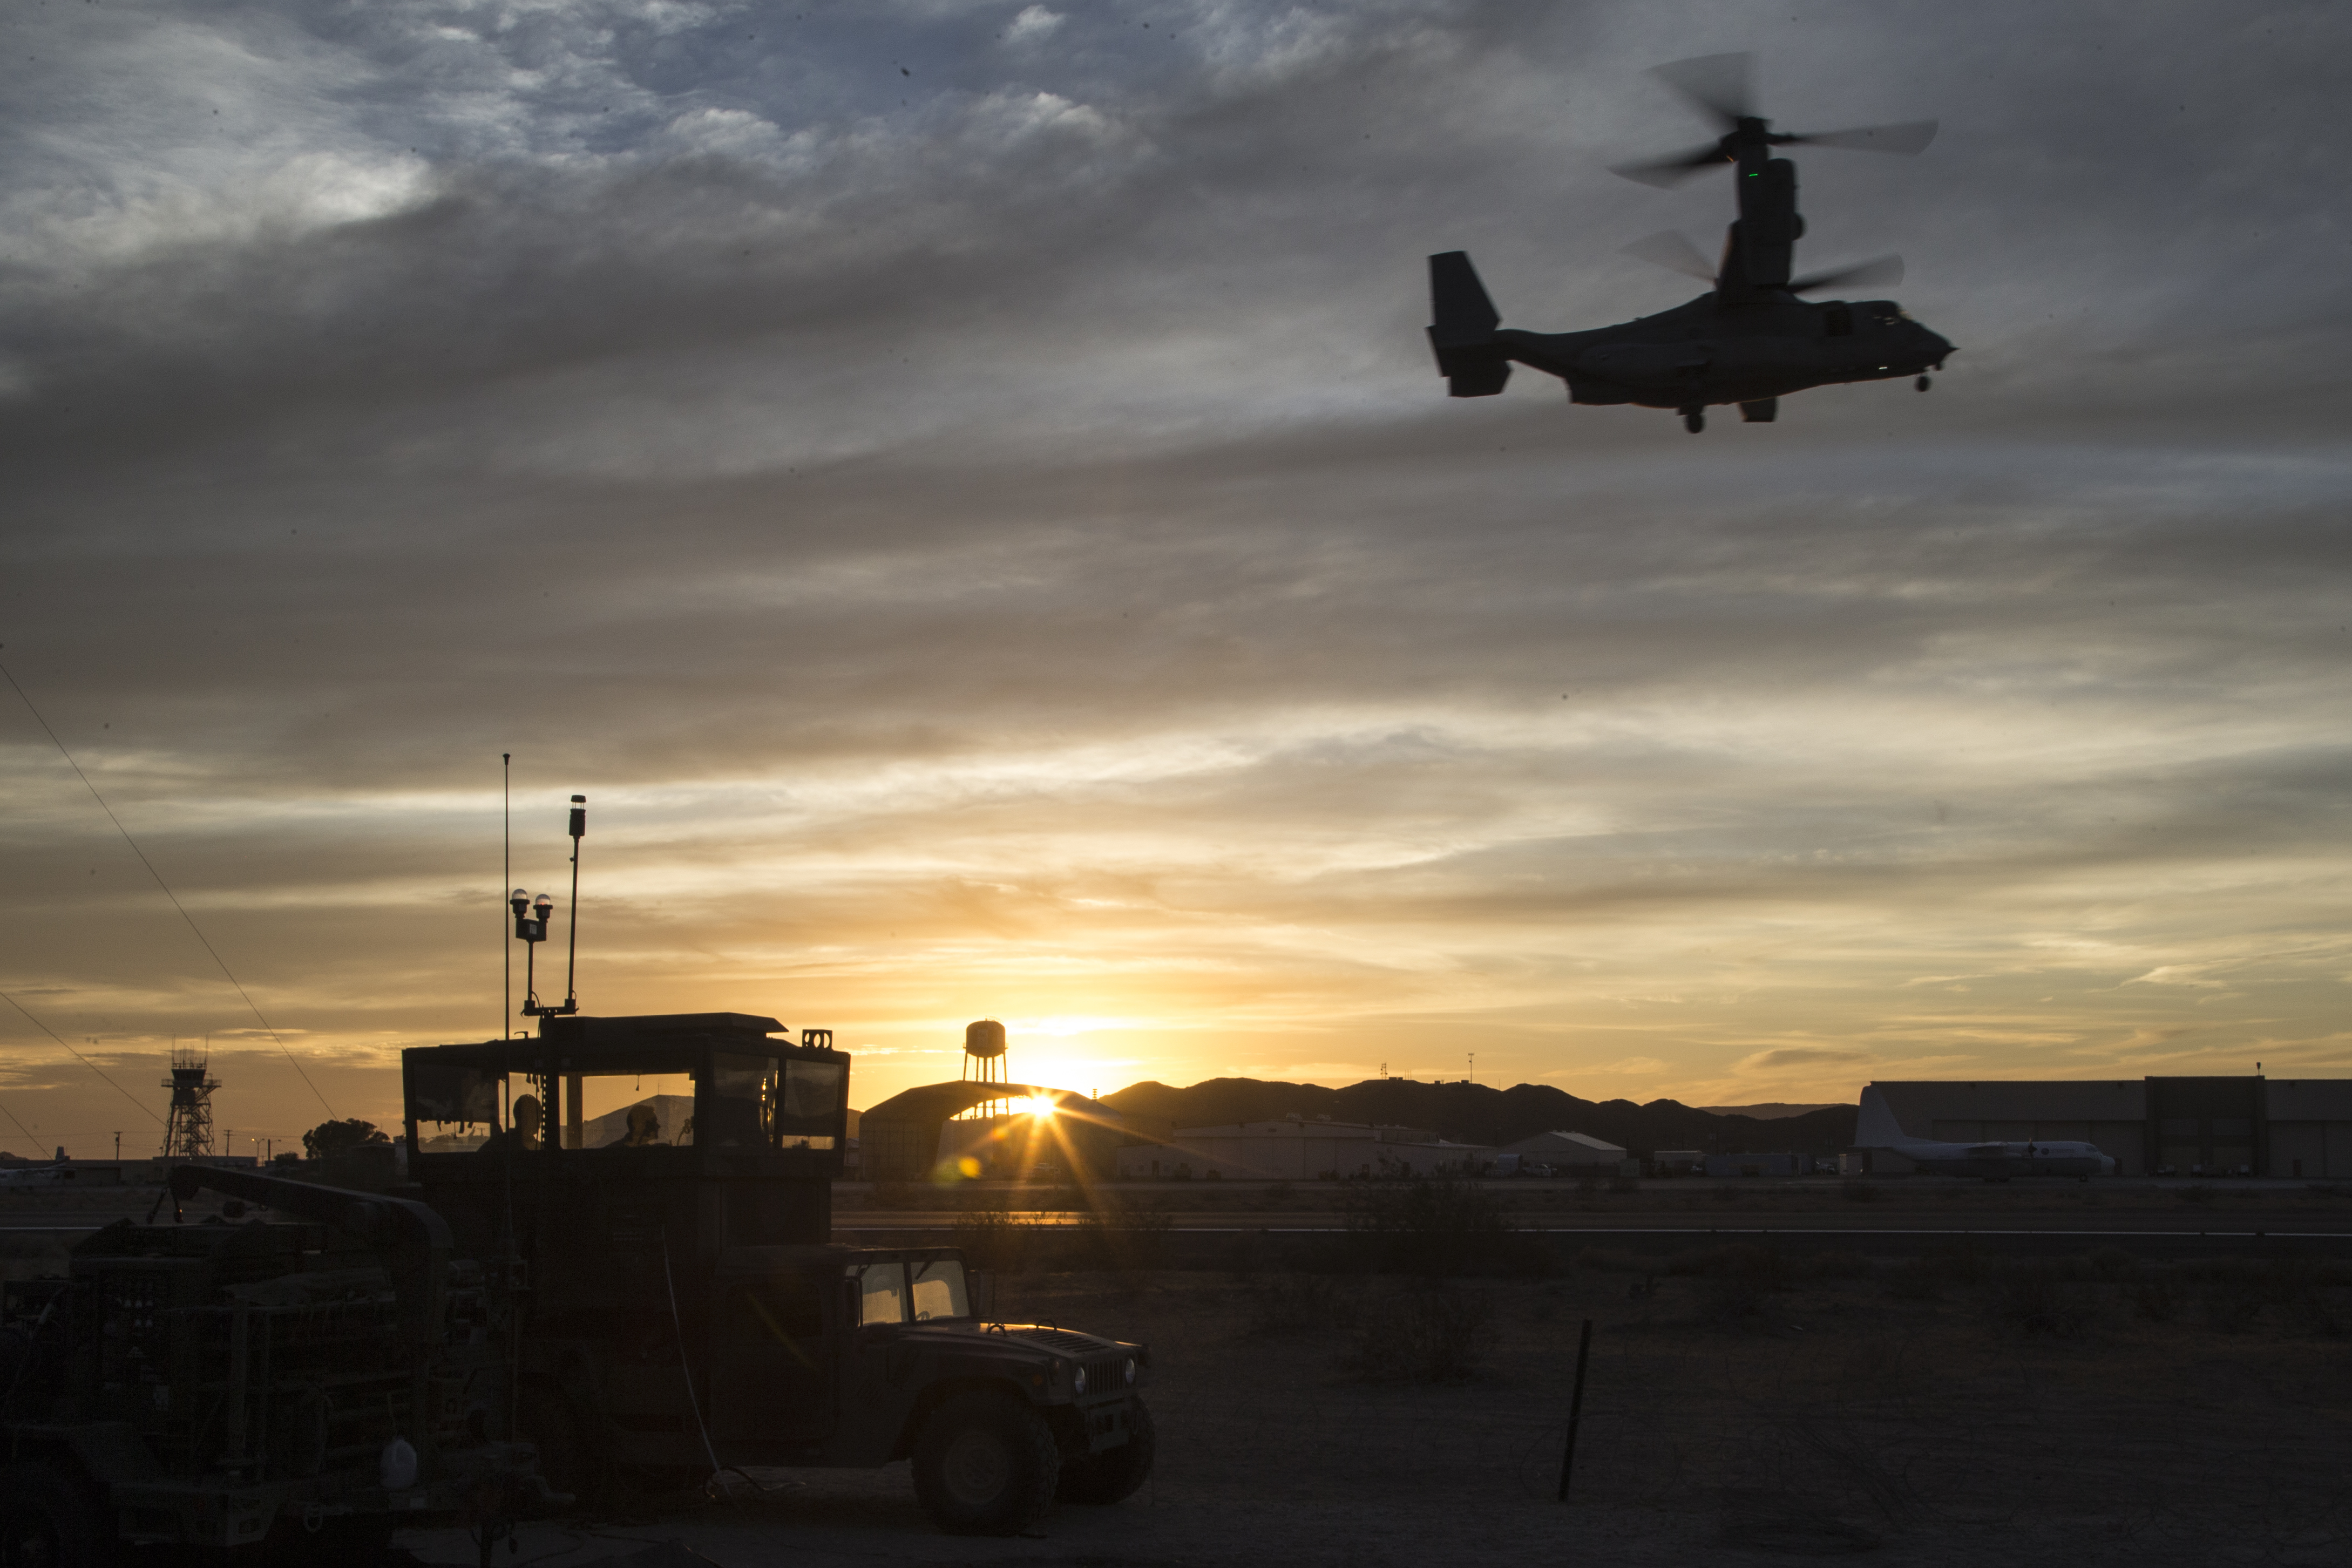 U.S. Marines assigned to Marine Aviation Weapons and Tactics Squadron One ensure safe runways for MV-22 Ospreys to land on during Weapons and Tactics Instructor Course (WTI) 1-18 at Yuma Proving Grounds, Ariz.. WTI is a seven-week training event hosted by MAWTS-1 cadre. (Sgt. Allison Lotz/Marine Corps)